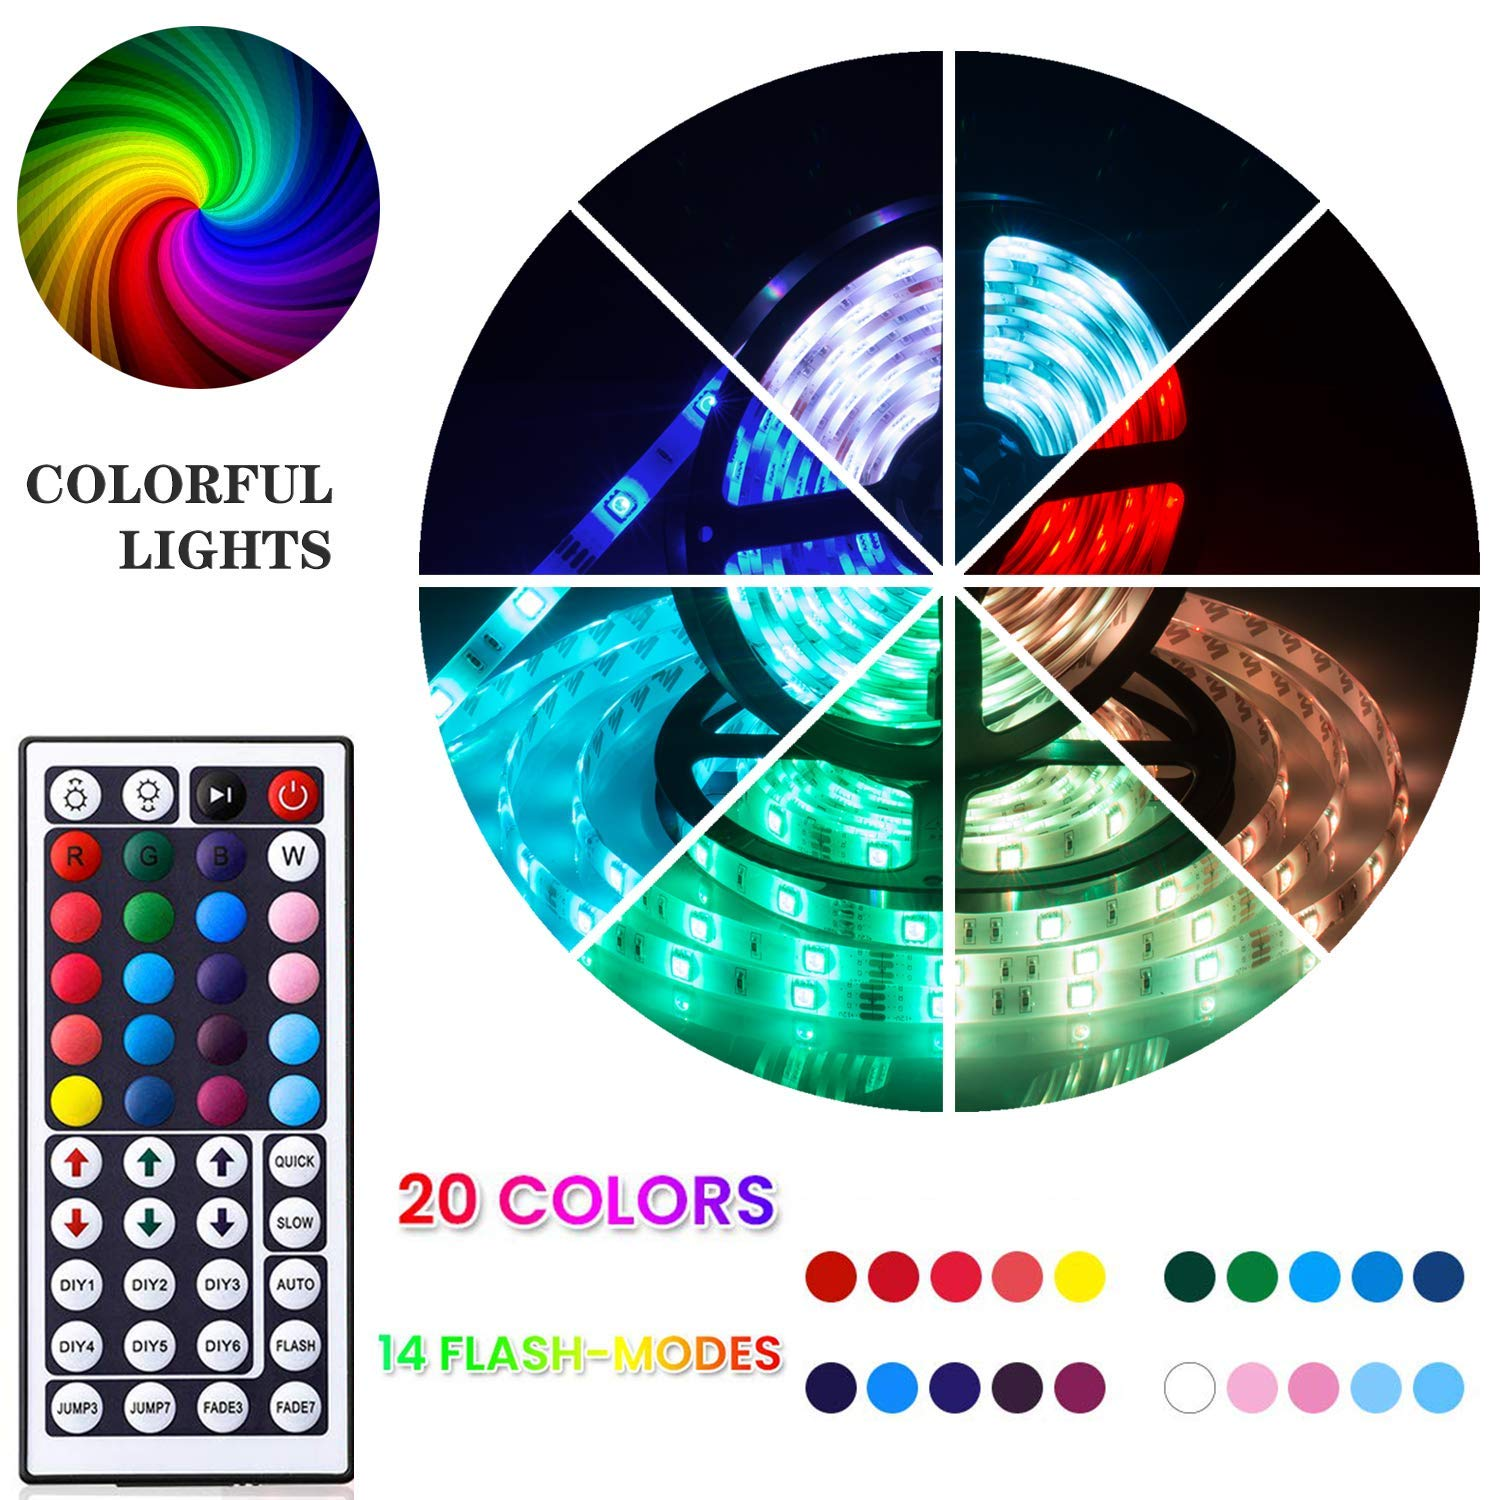 UTTORA LED Strips Lights, 10M 300LEDs 5050 RGB Colour Changing Lighting Strip, DIY LED Lights with 44-Keys Remote Control Decoration for Garden Living Room Party Wedding